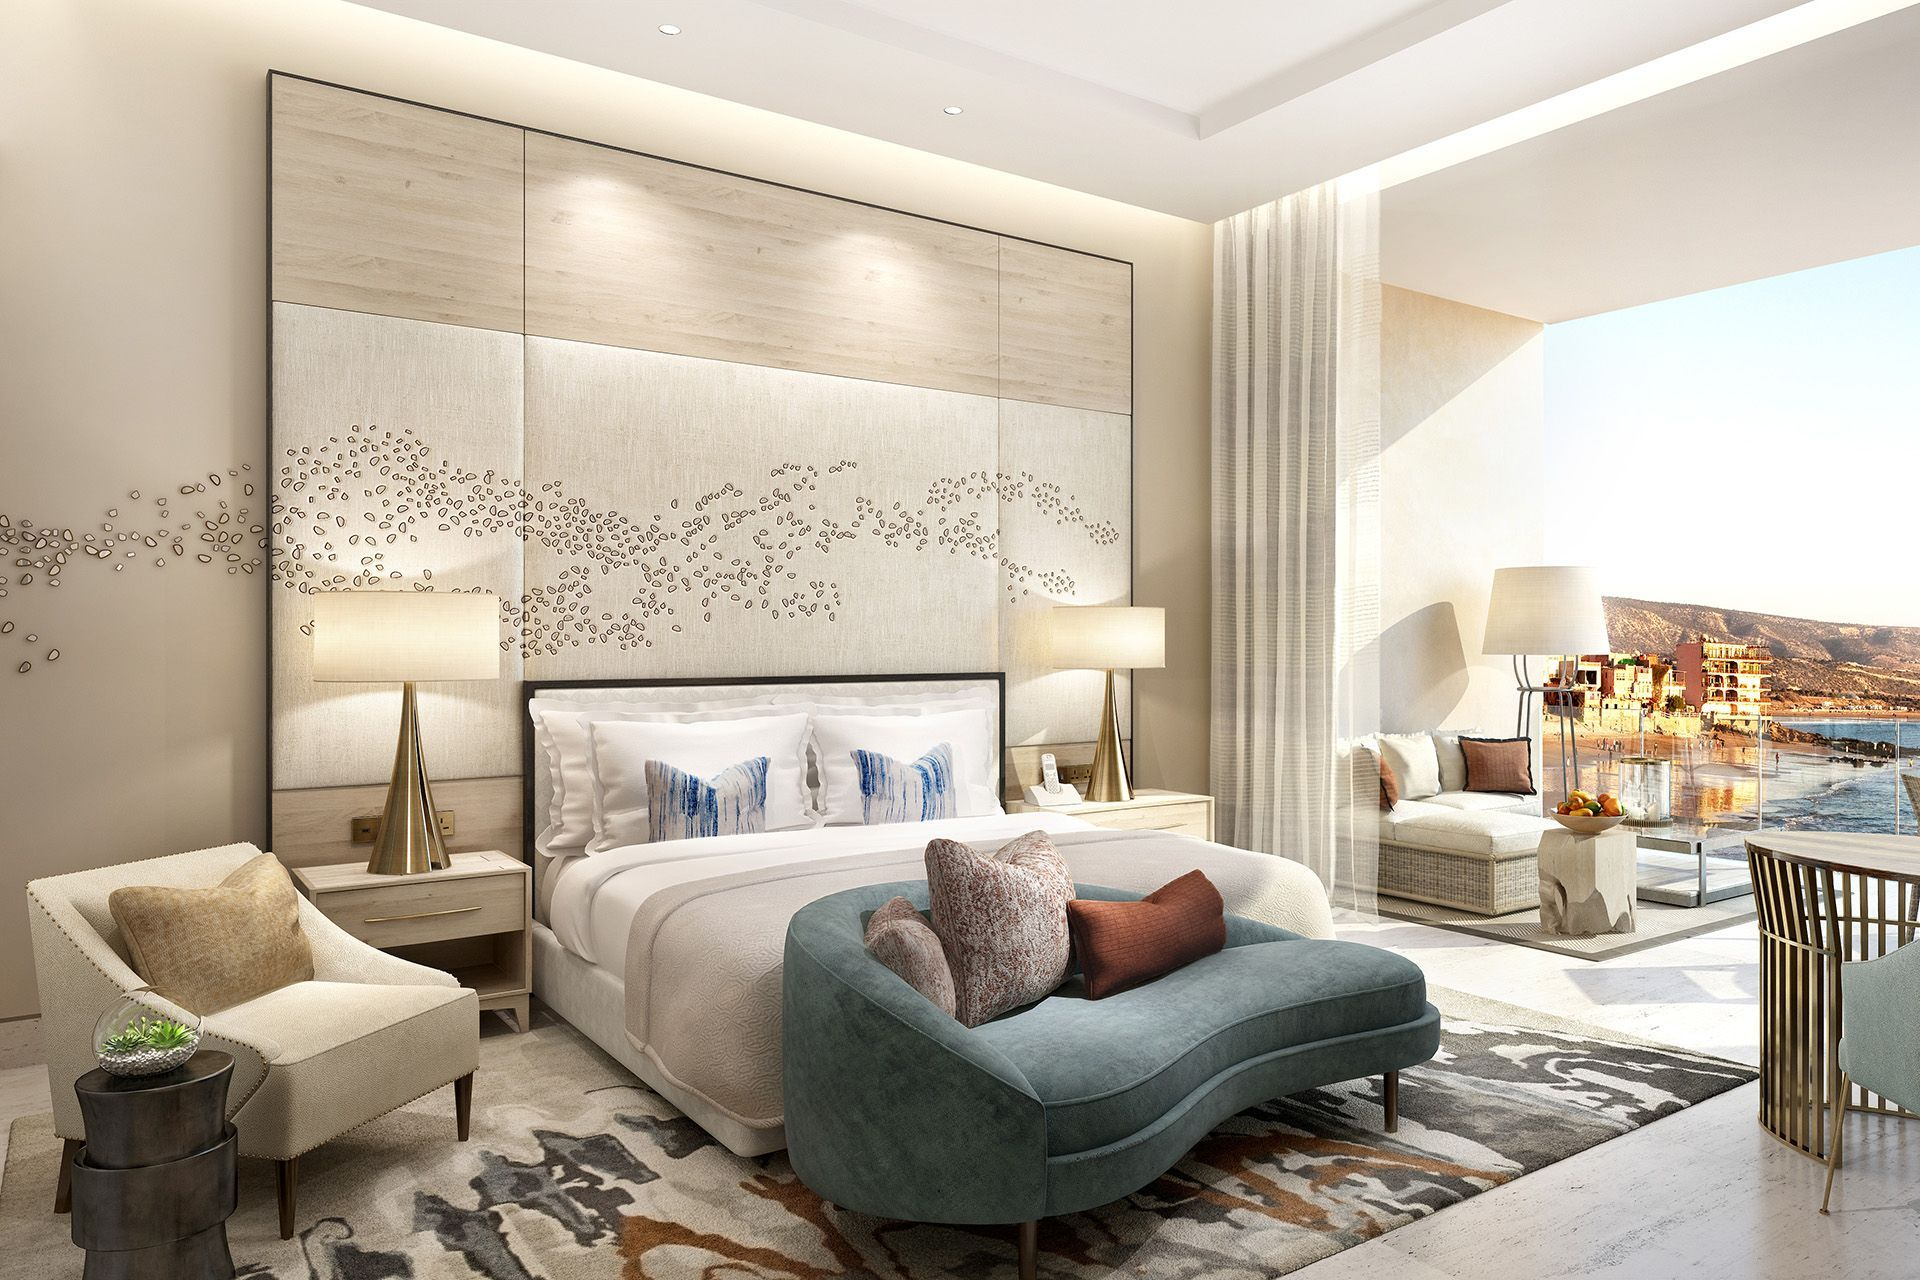 Four seasons taghazout interior designers wimberly for Interior design ideas for bedrooms modern